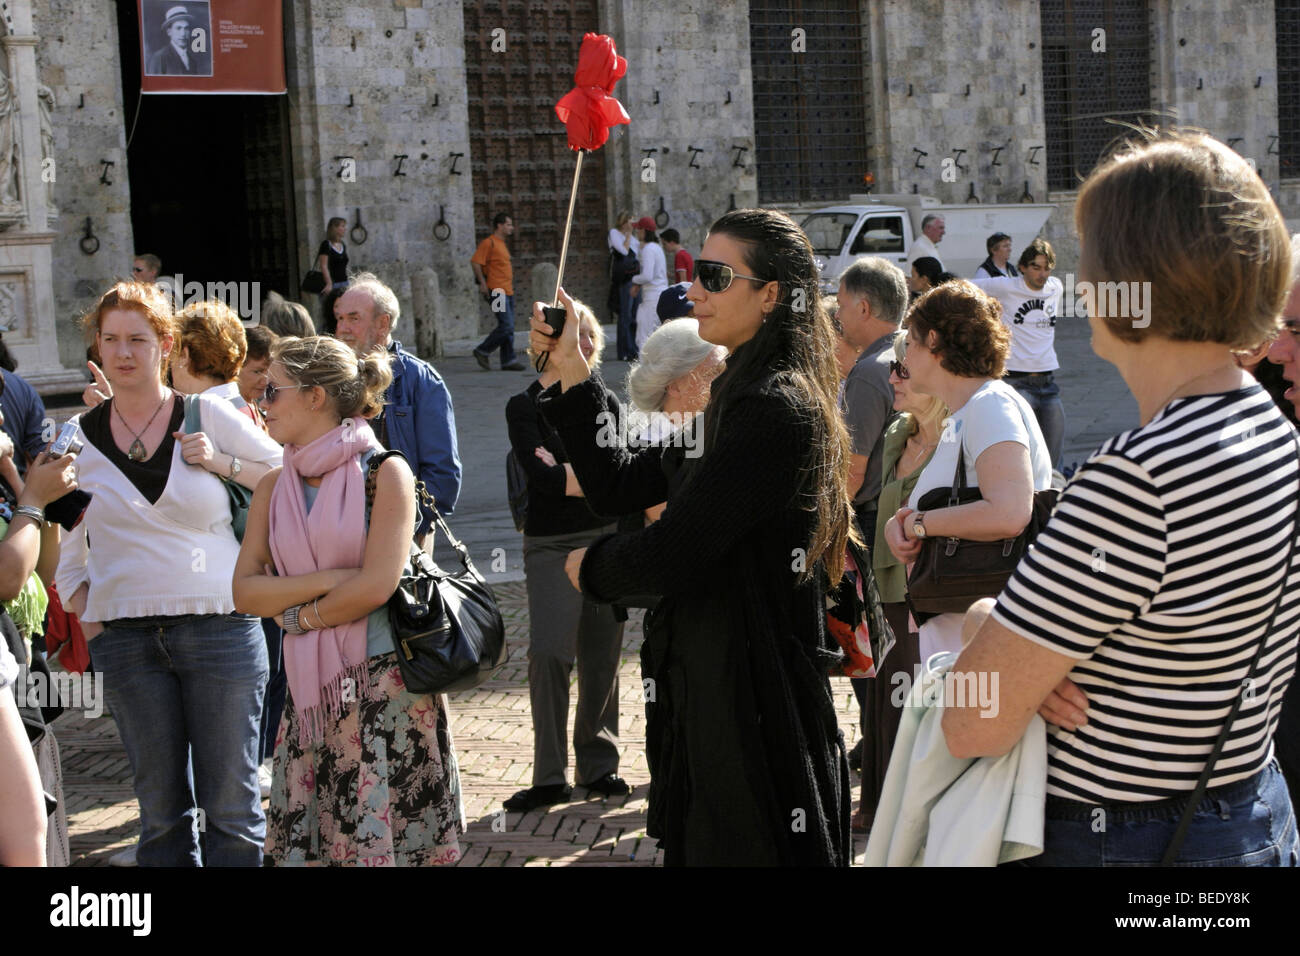 Travel guide with red umbrella for orientation, surrounded by tourists on Campo of Siena, Tuscany, Italy - Stock Image